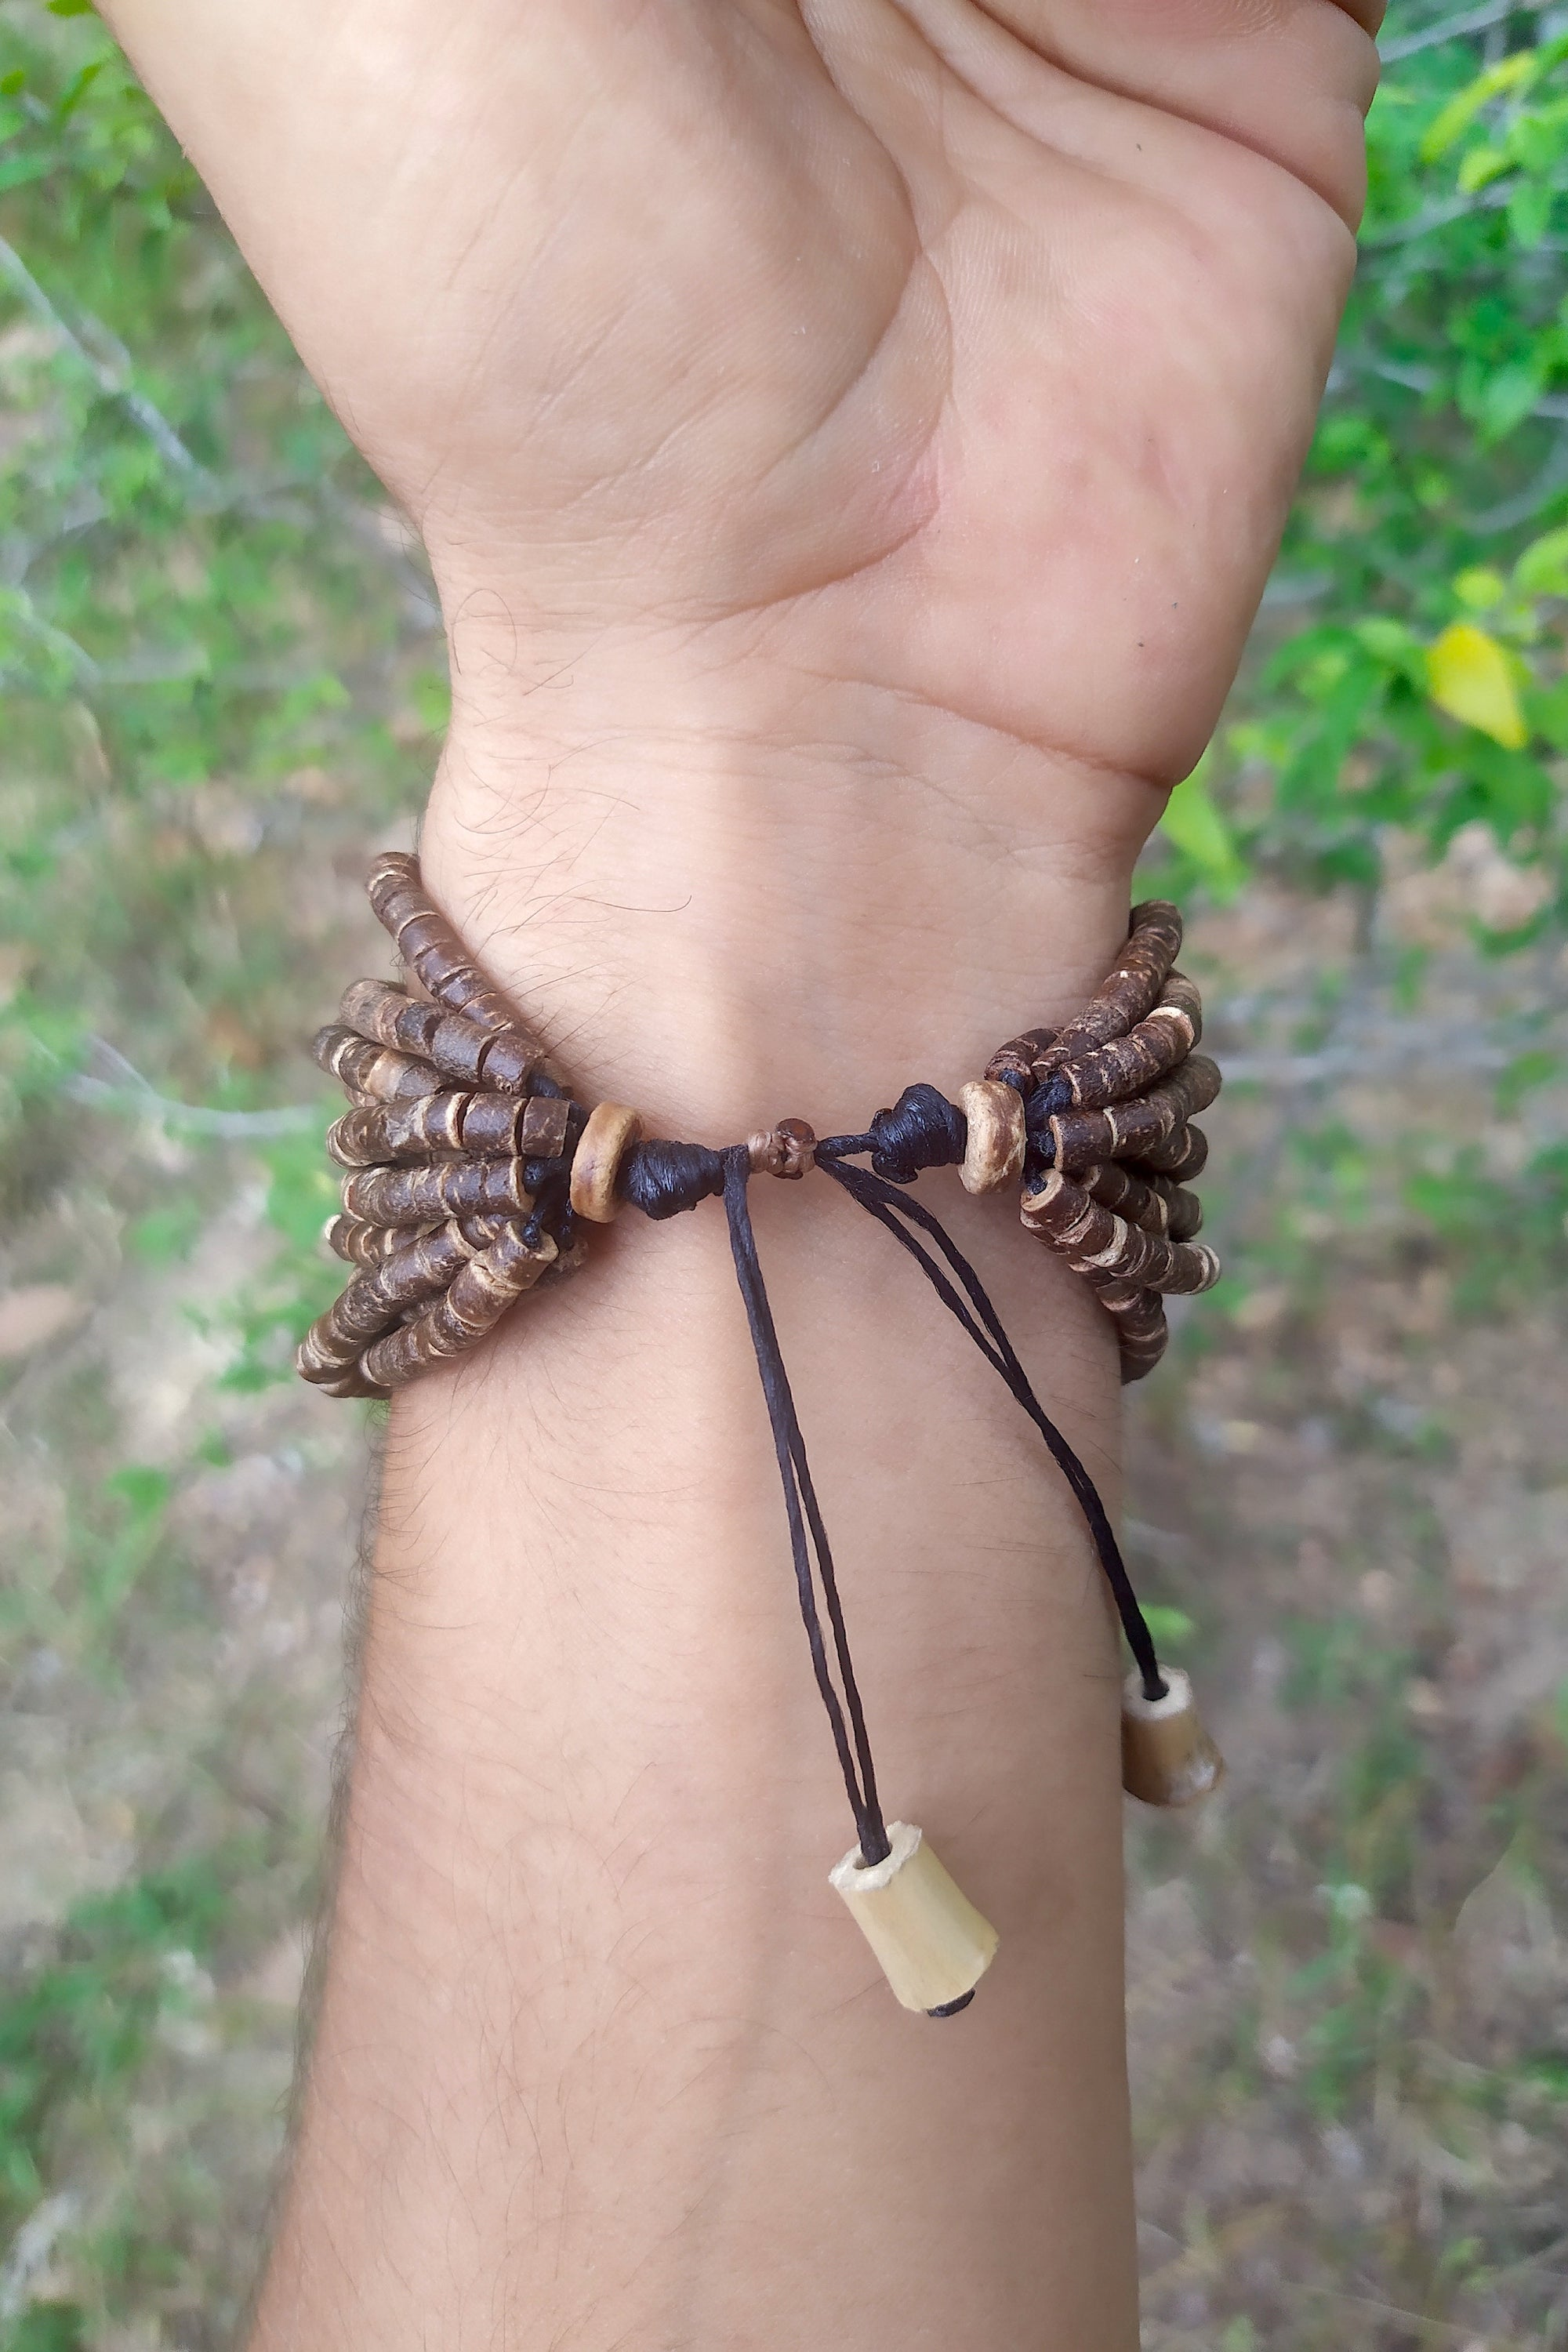 Coconut Beads Large Bracelet